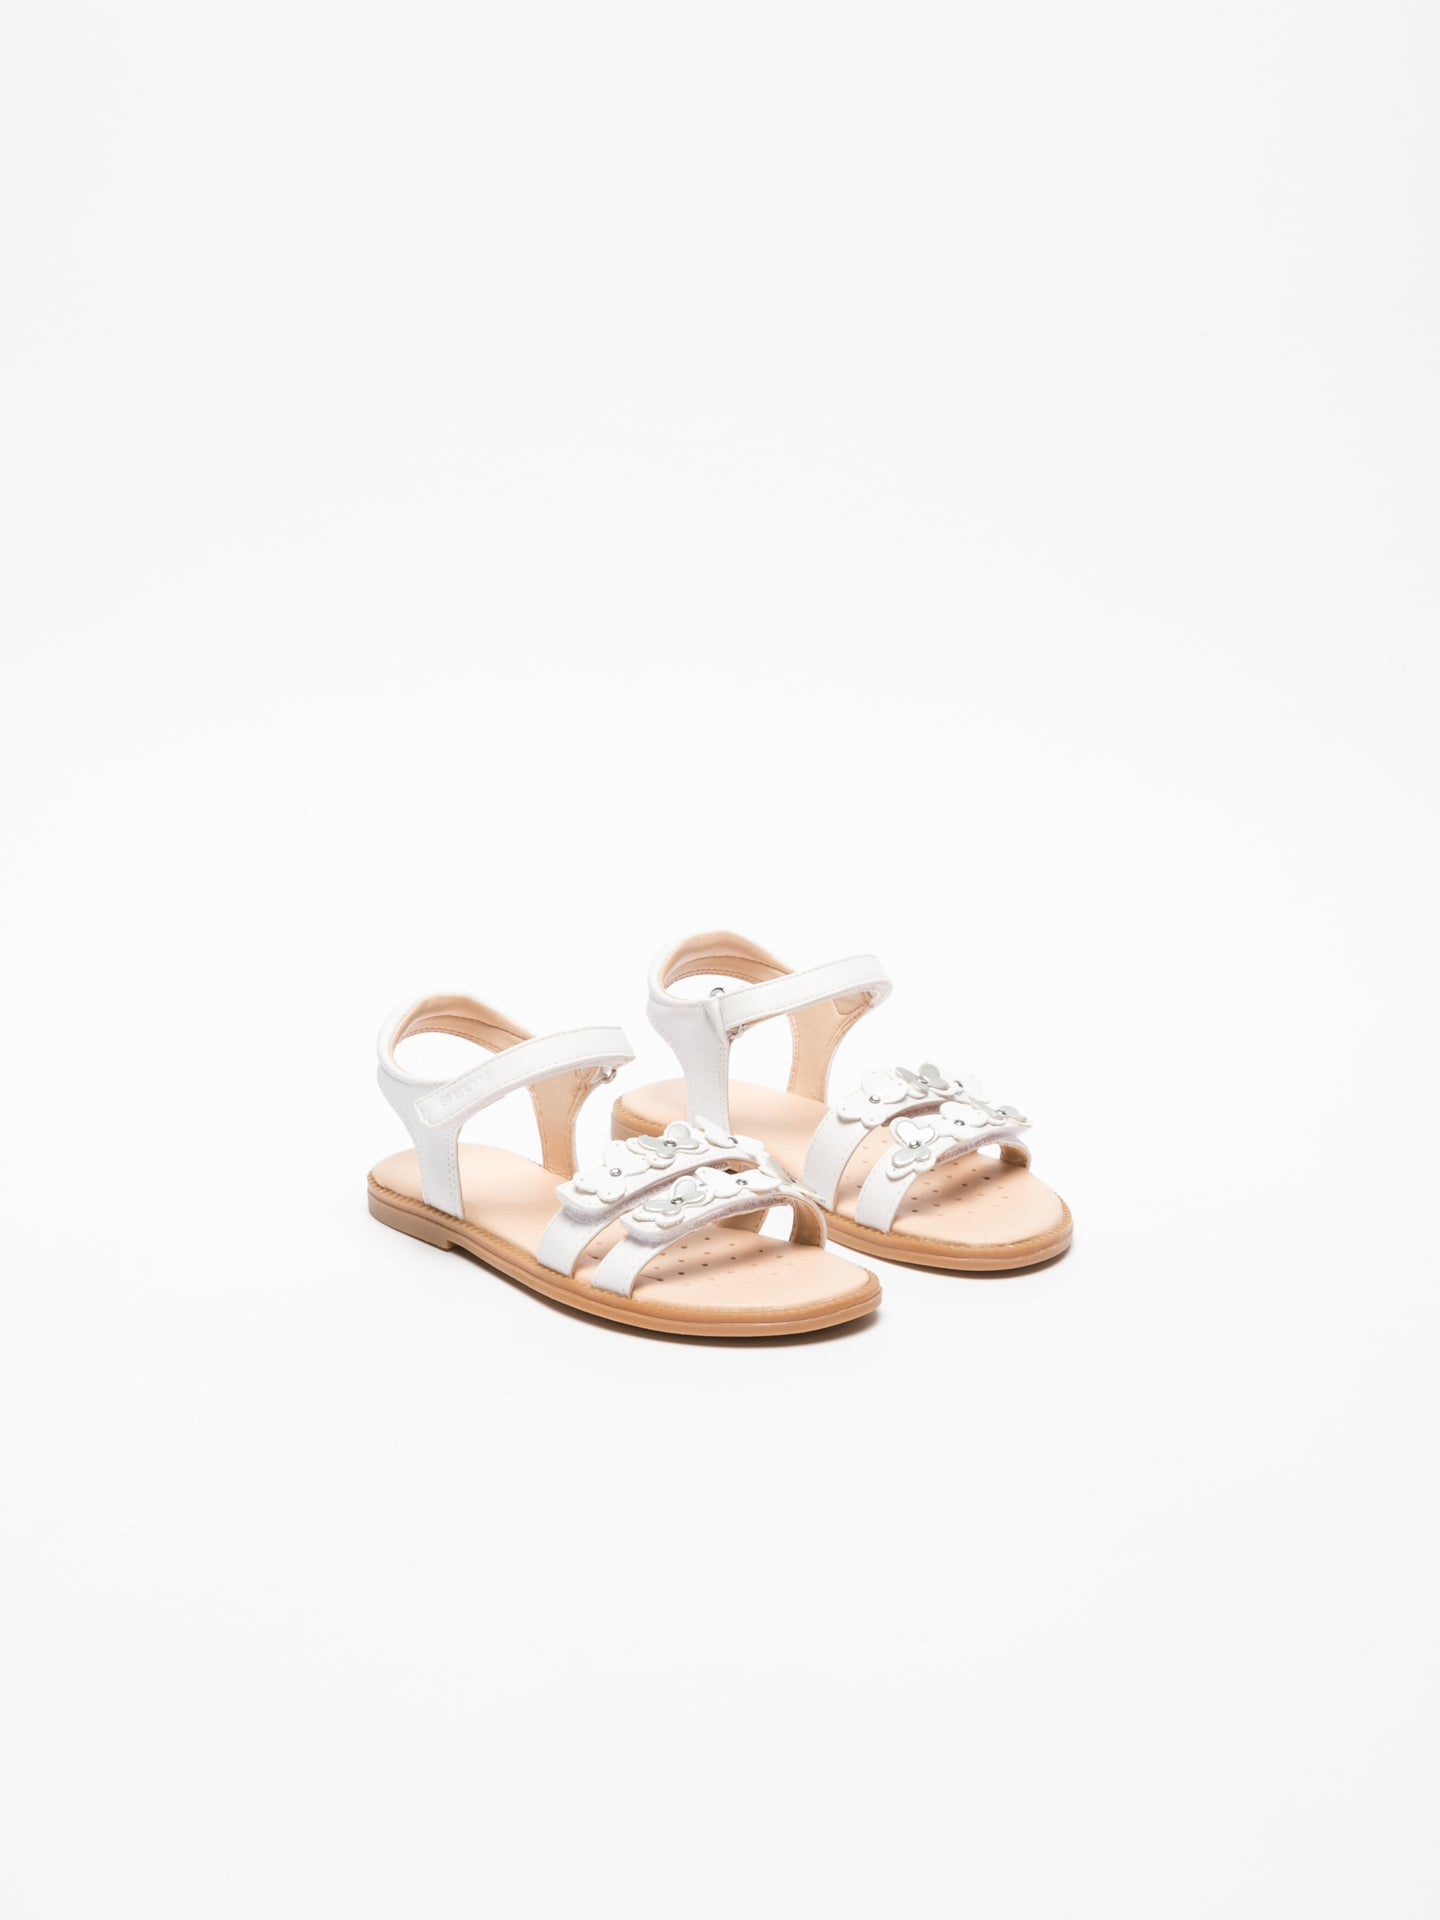 Geox White Strappy Sandals